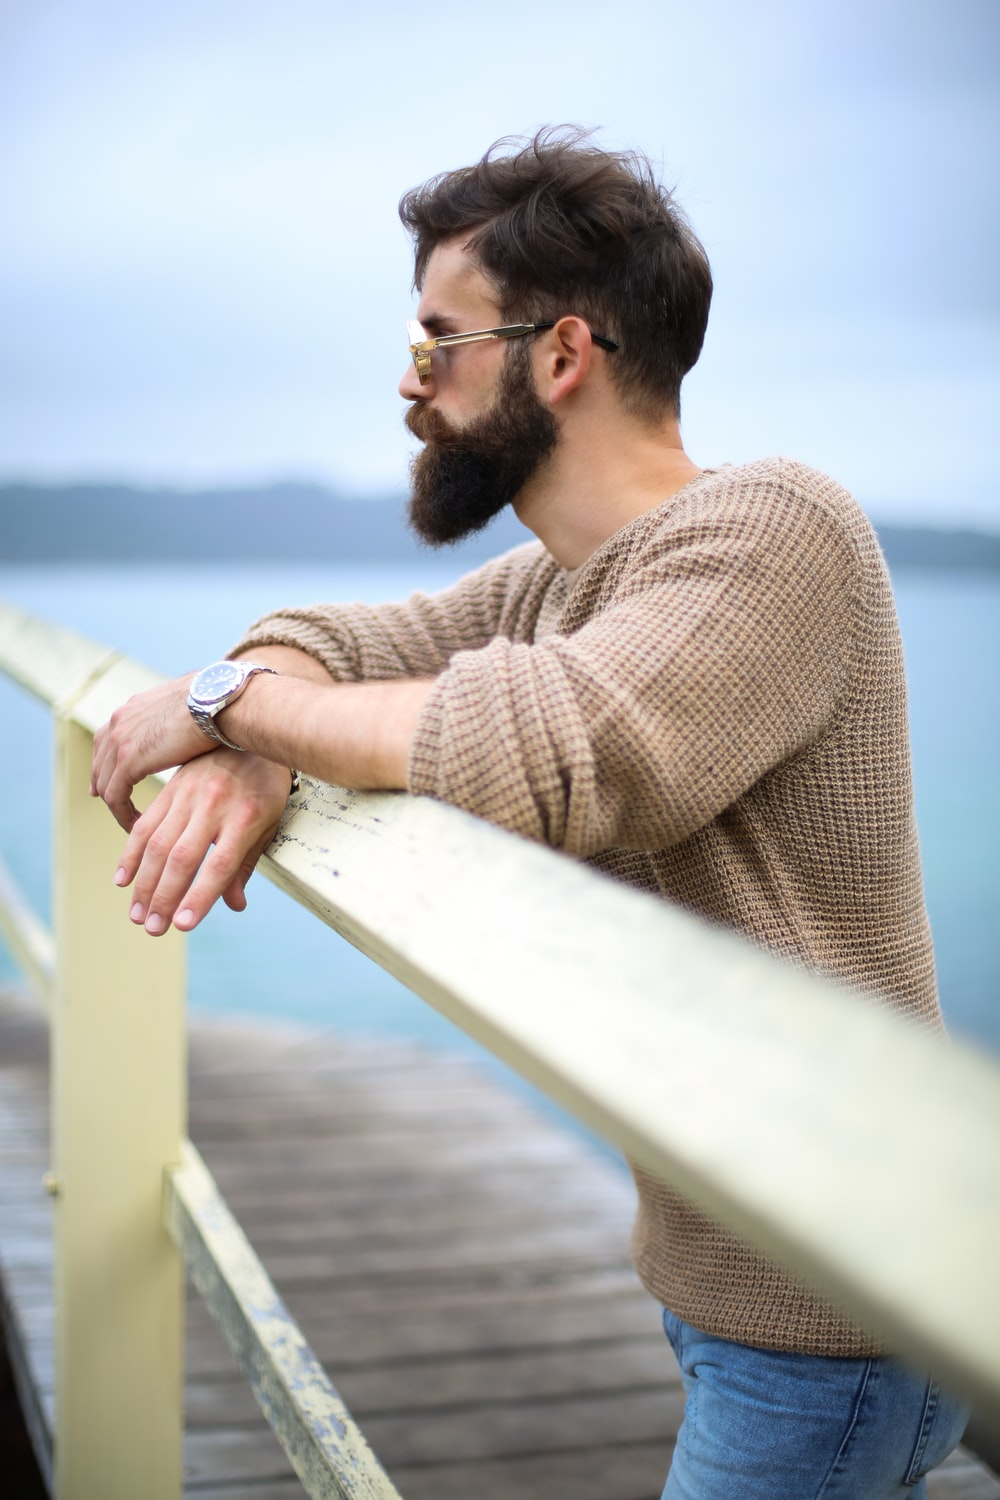 100+ Beard Pictures | Download Free Images on Unsplash